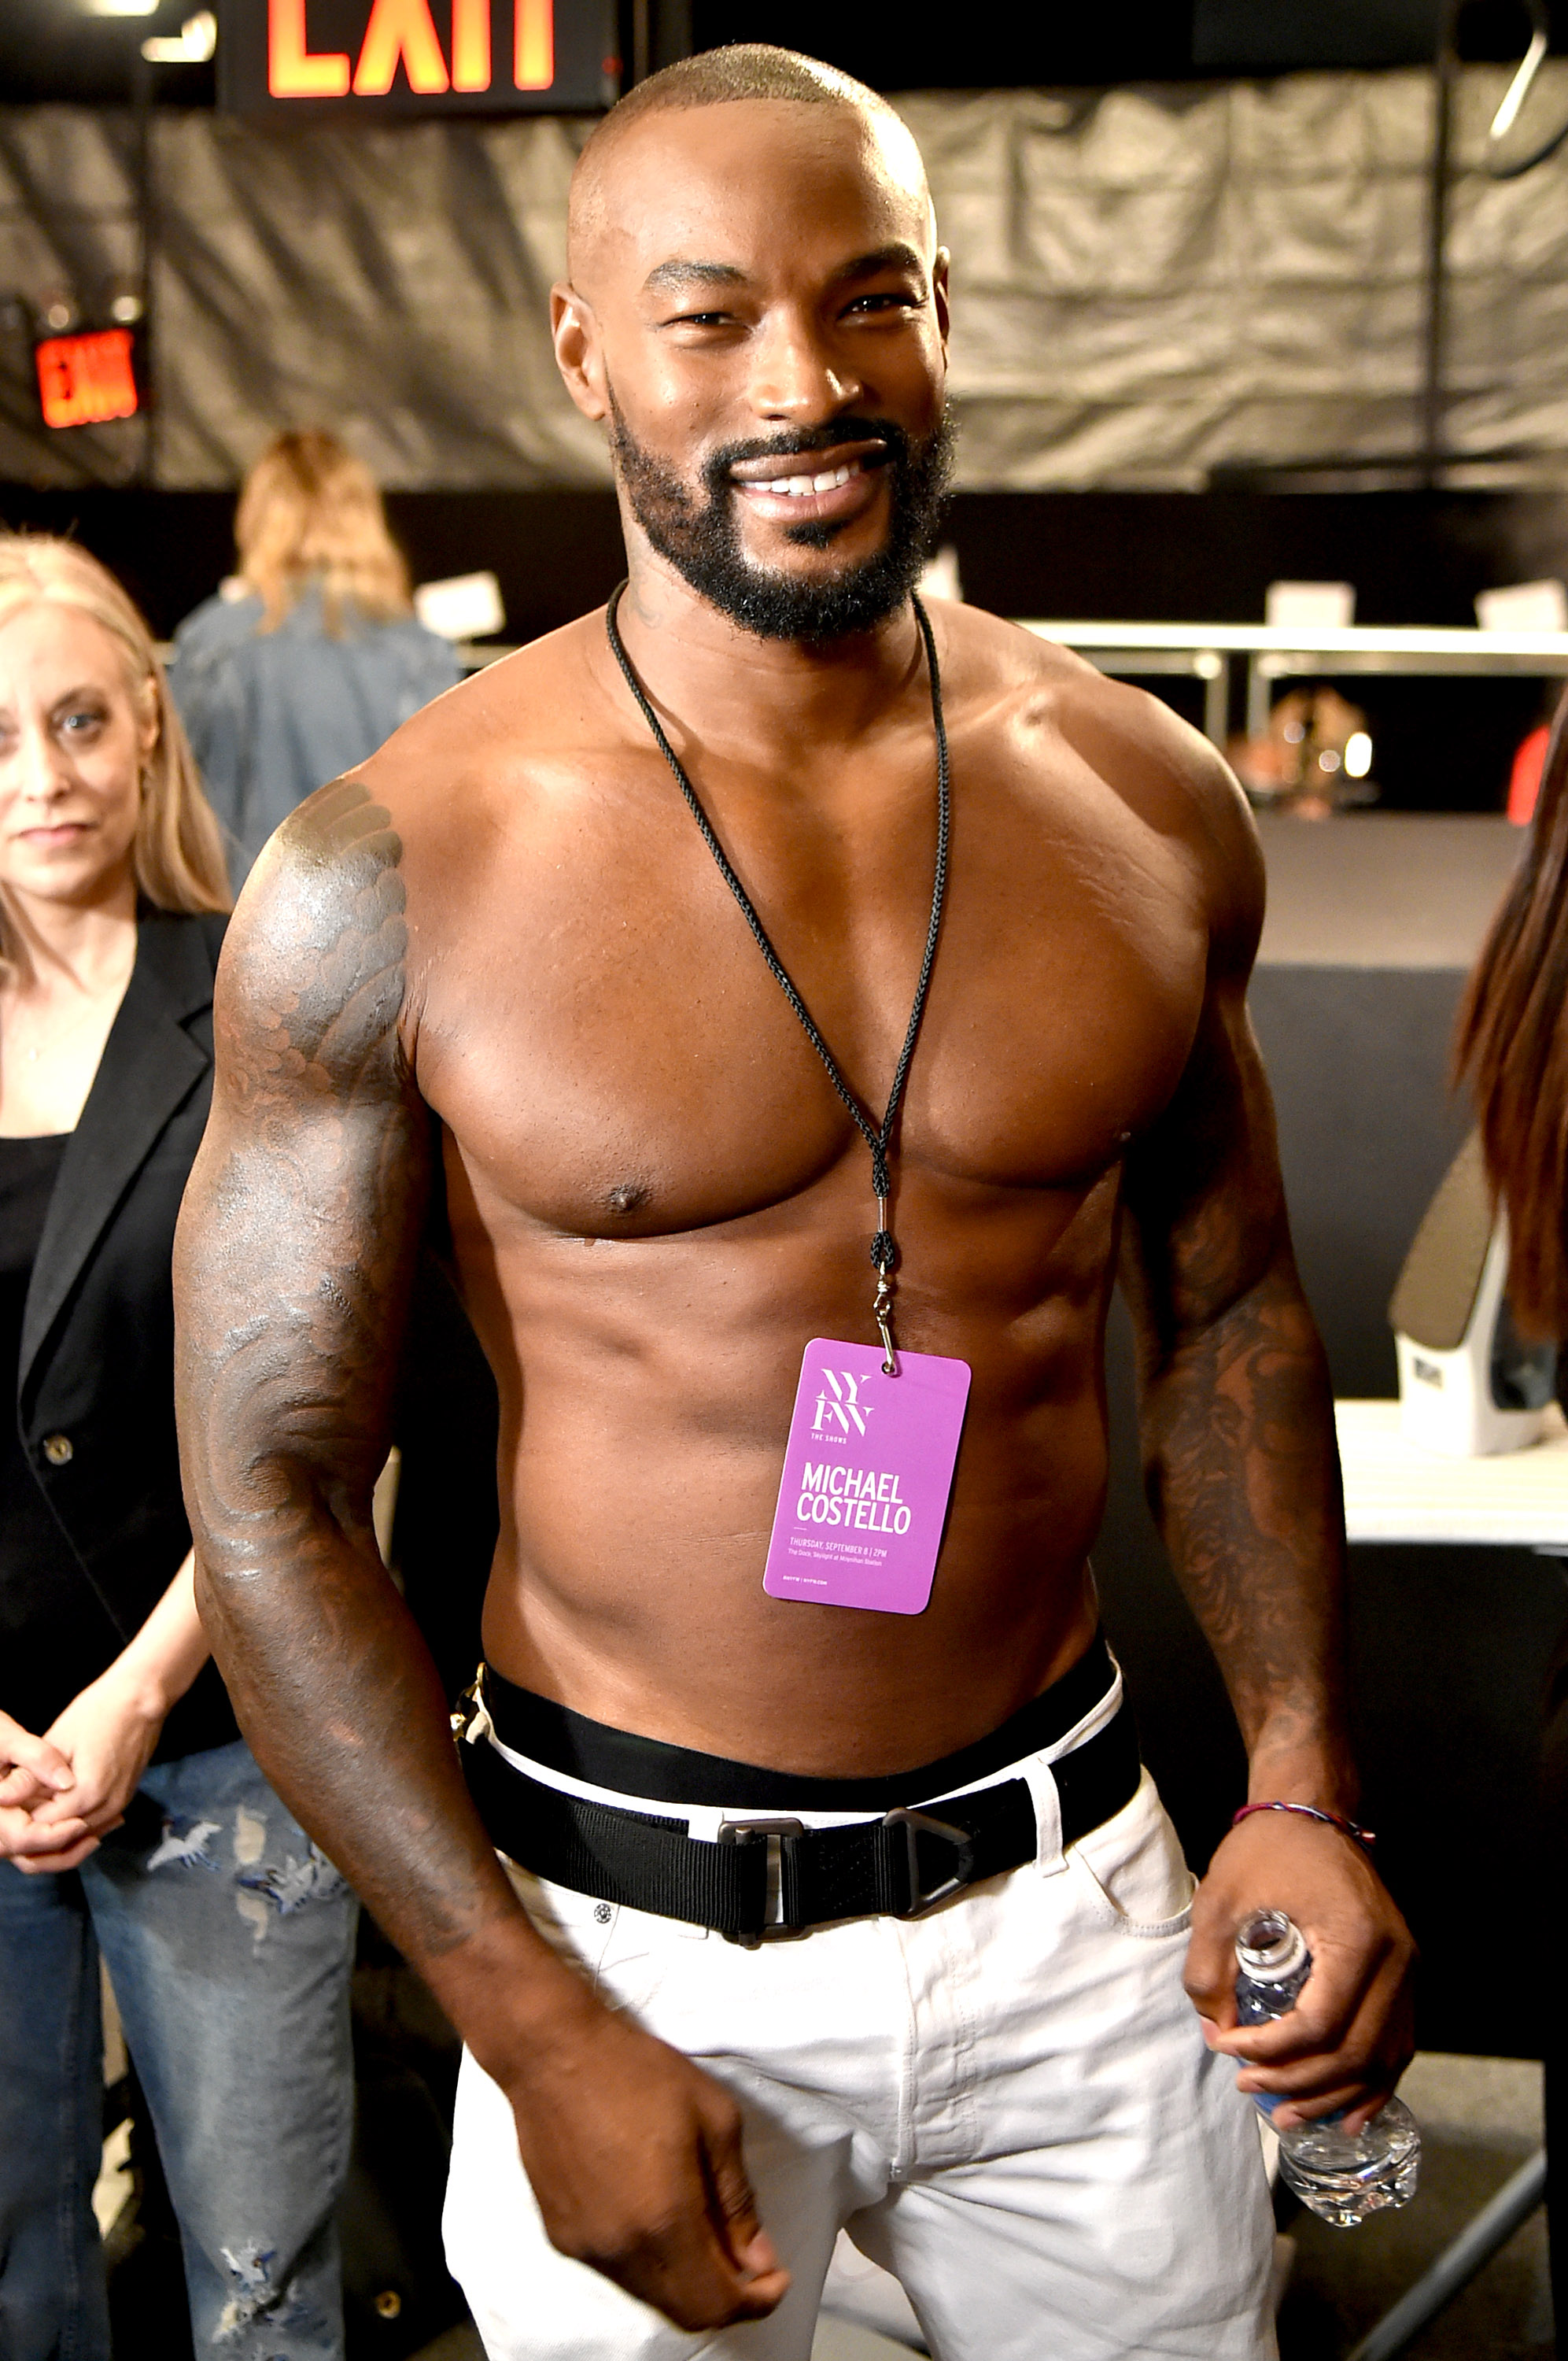 Actor Tyson Beckford is turning 50 with his secret skin changing secret, keeping him young and glowing.